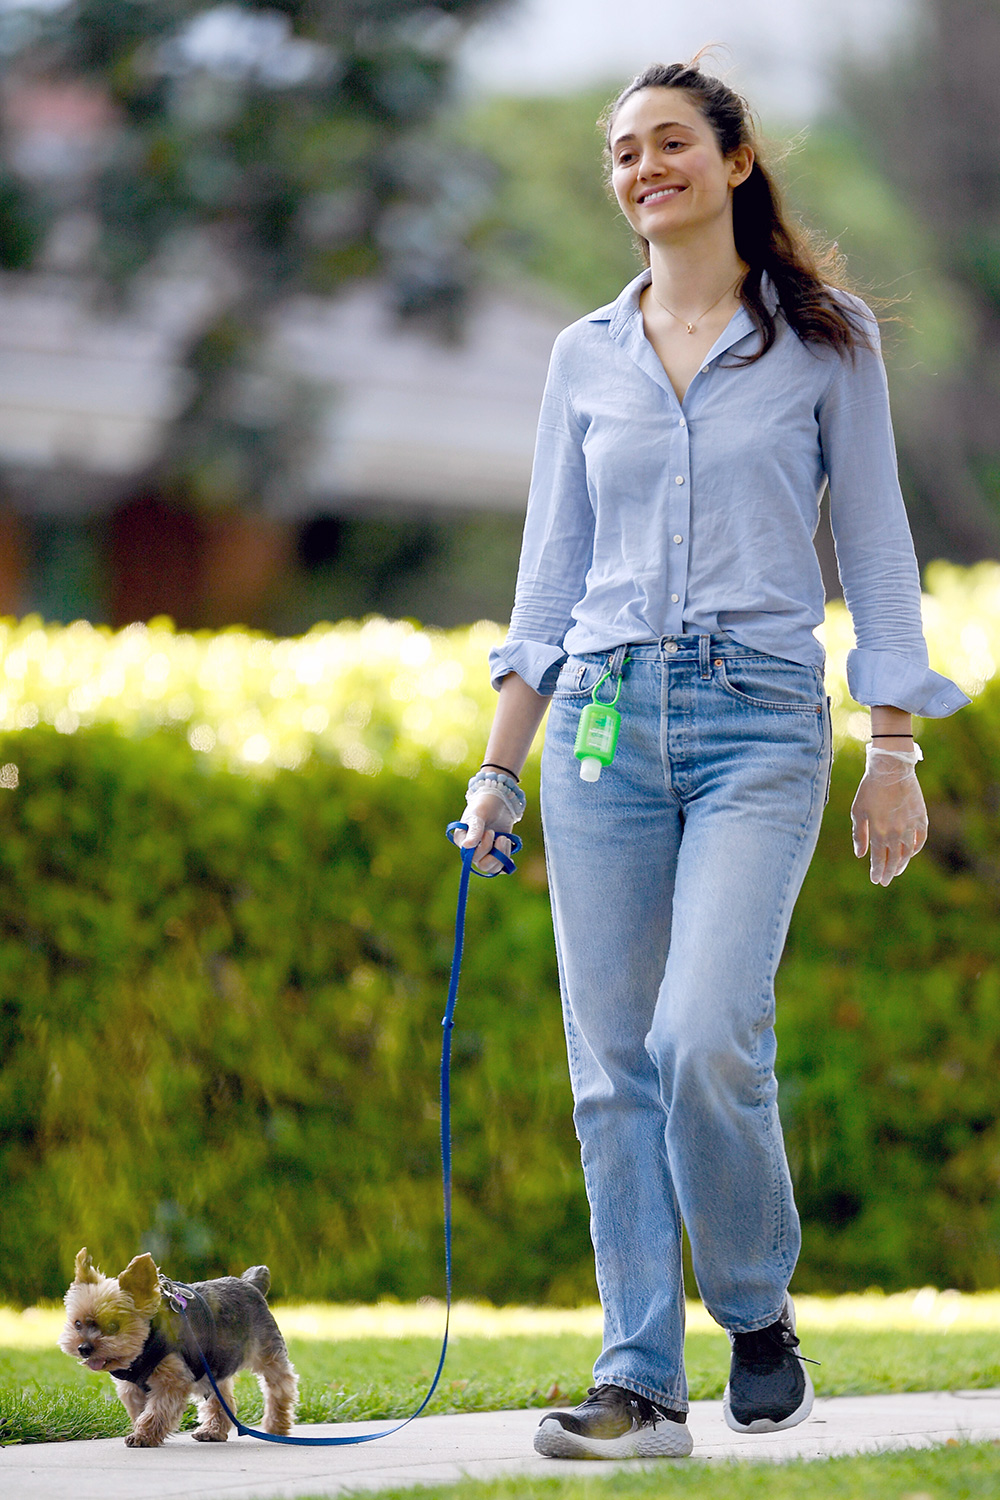 Emmy Rossum and Sam Esmail Wear Rubber Gloves While Walking Their Dogs in Los Angeles.